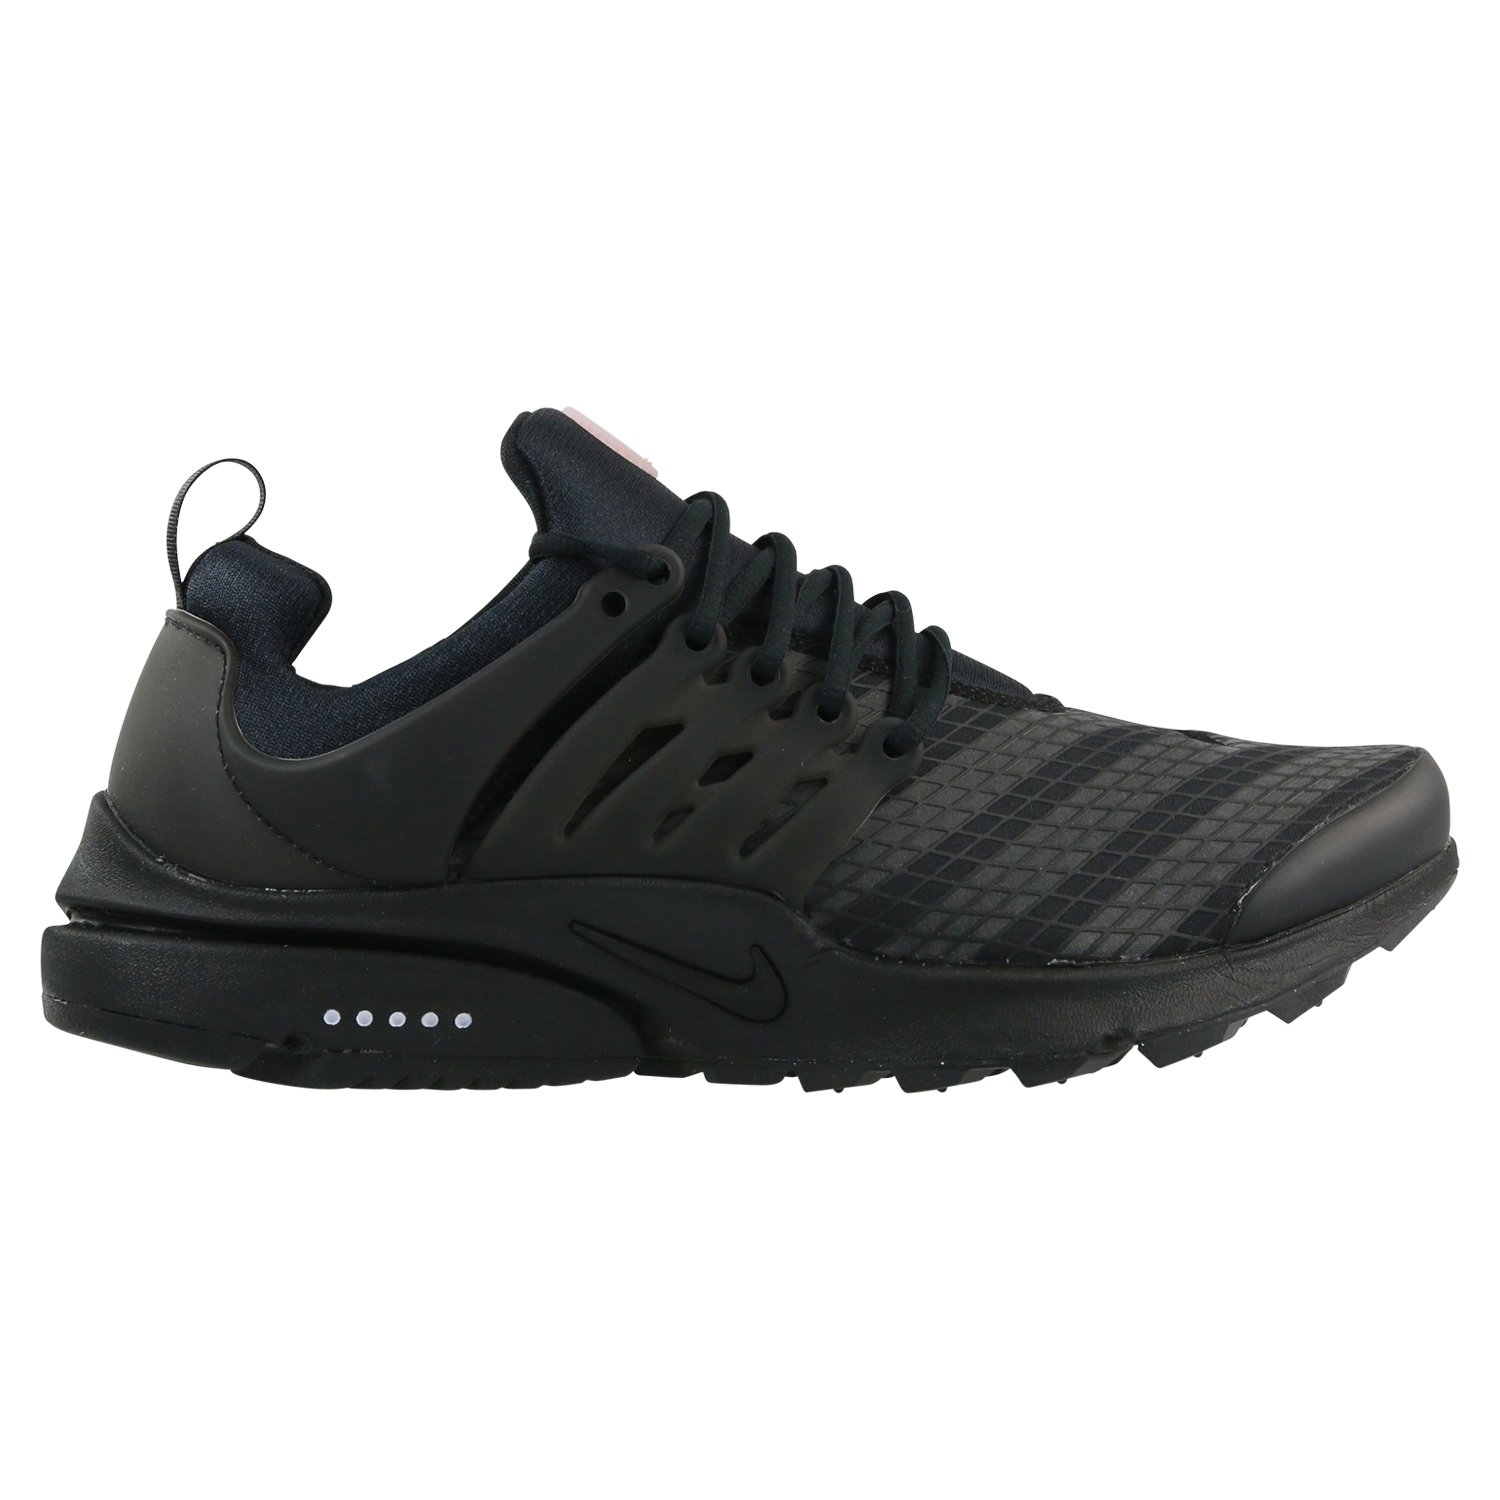 buy online d1504 00c7f Galleon - NIKE Mens Air Presto Low Utility Shoes Black Black White  862749-004 Size 9